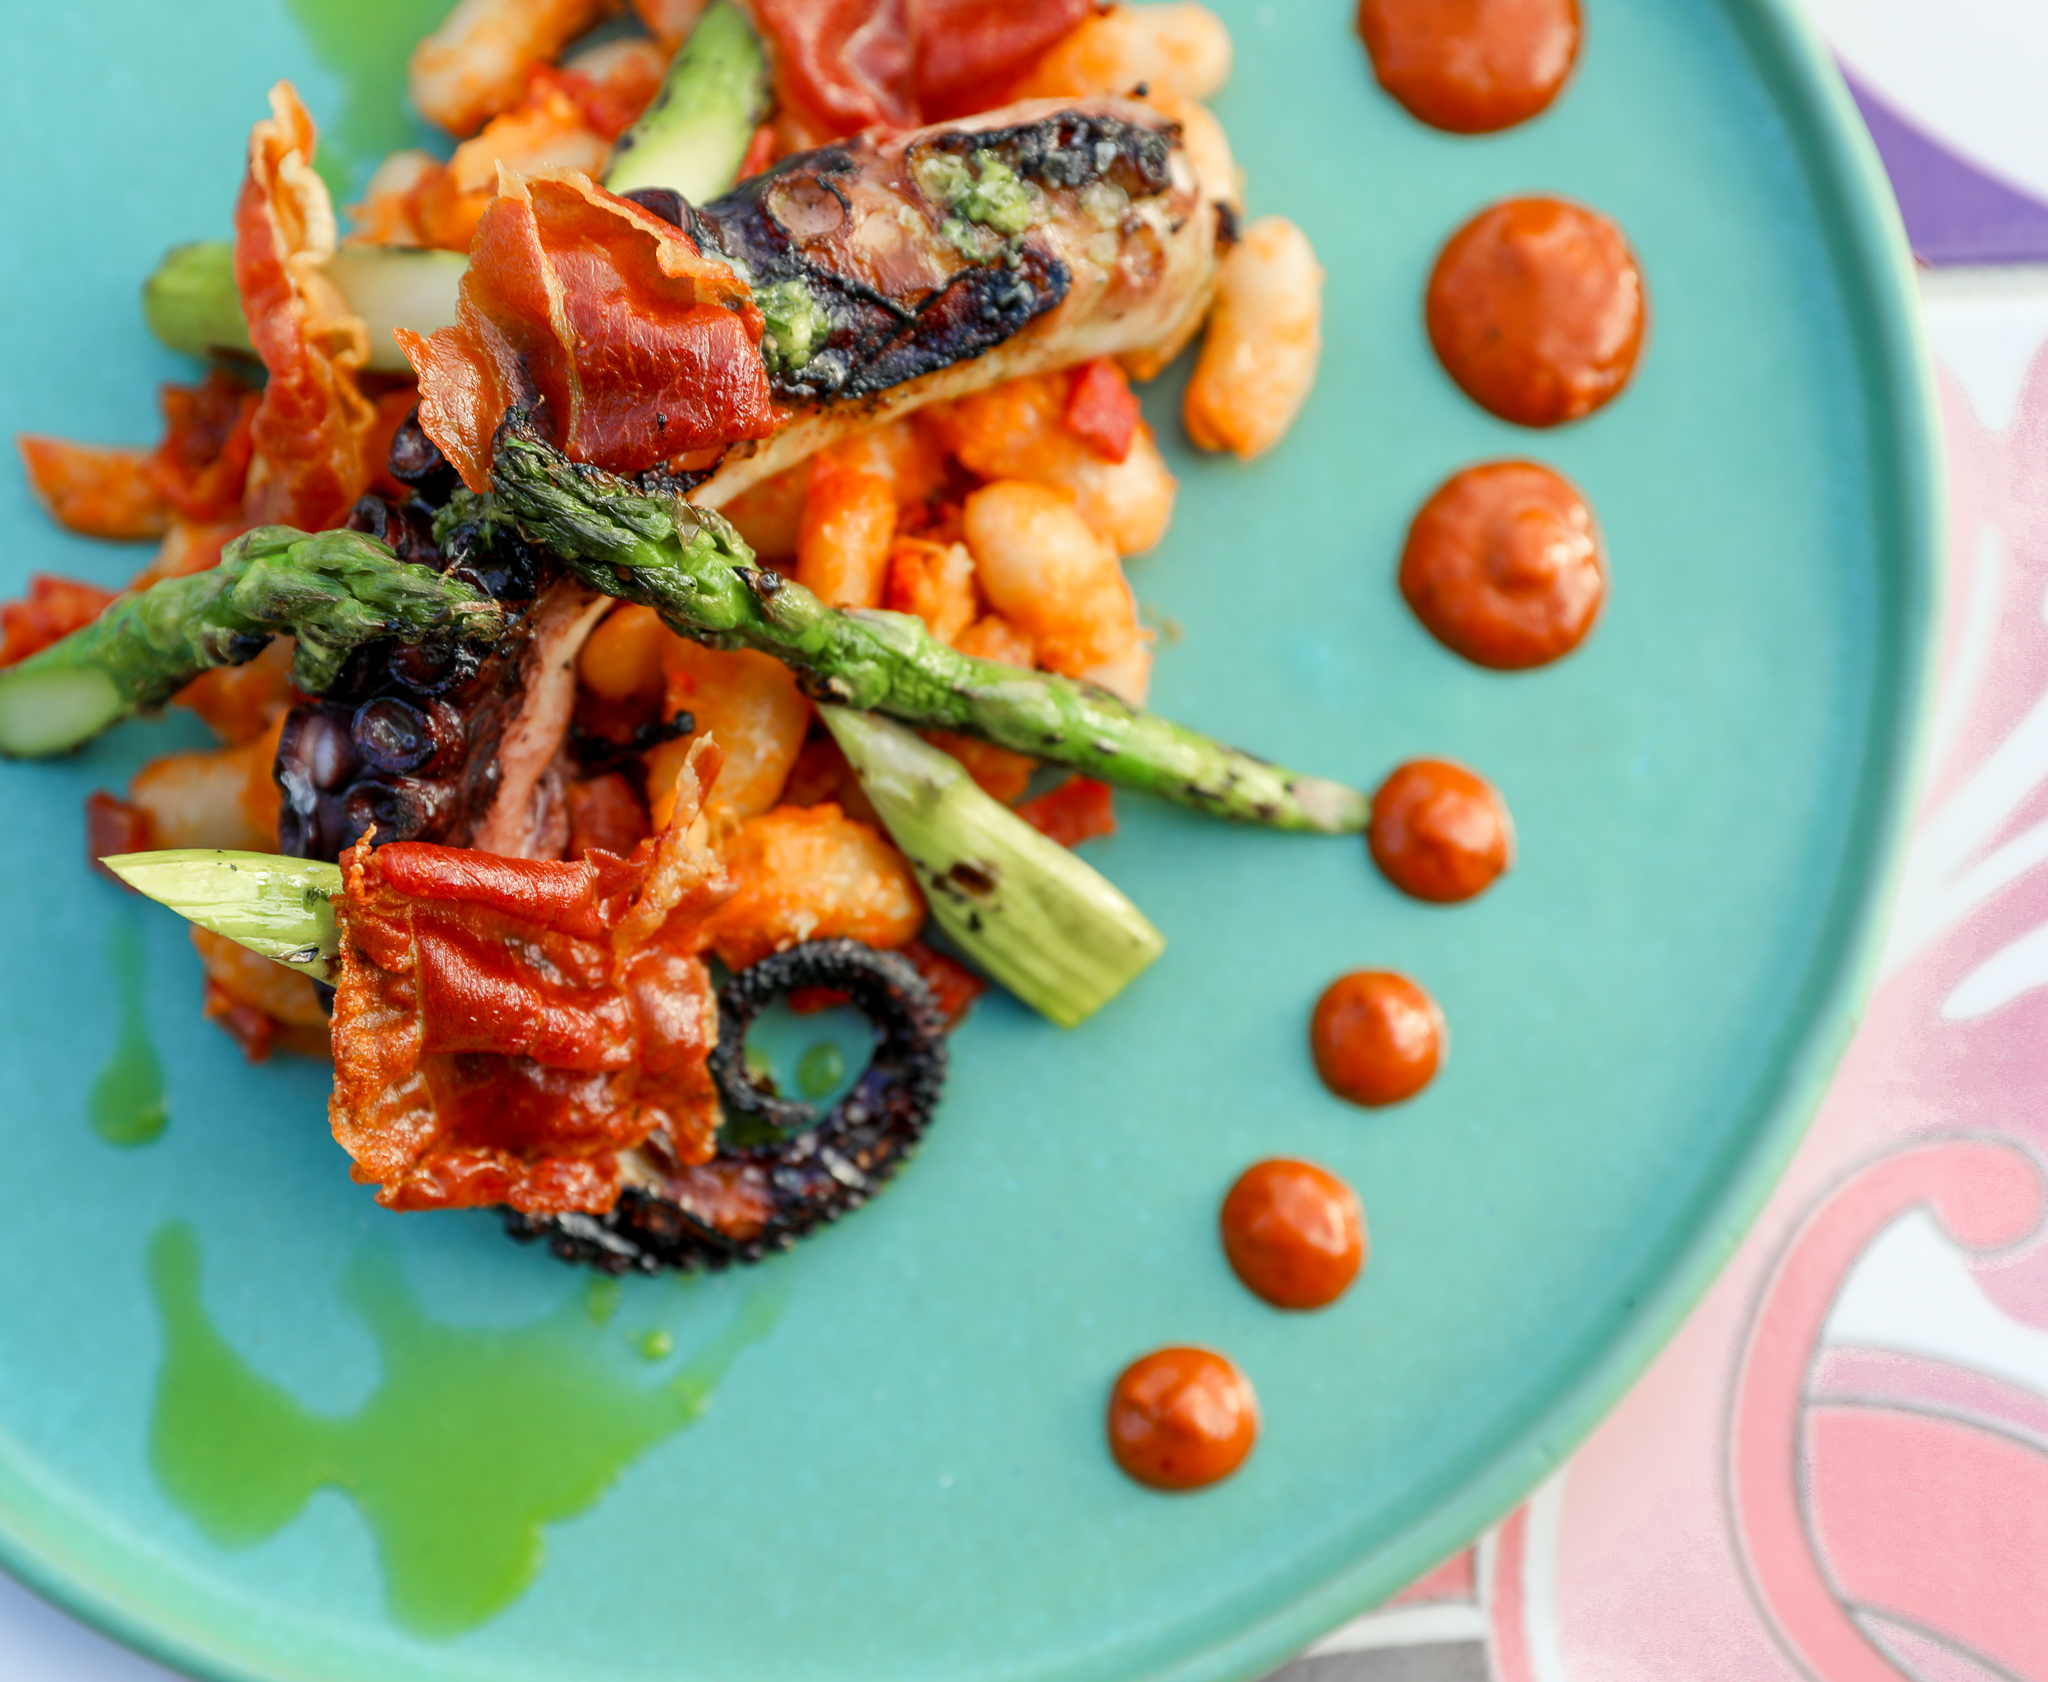 A blue plate with grilled octopus and asparagus at Buena Vida Tapas